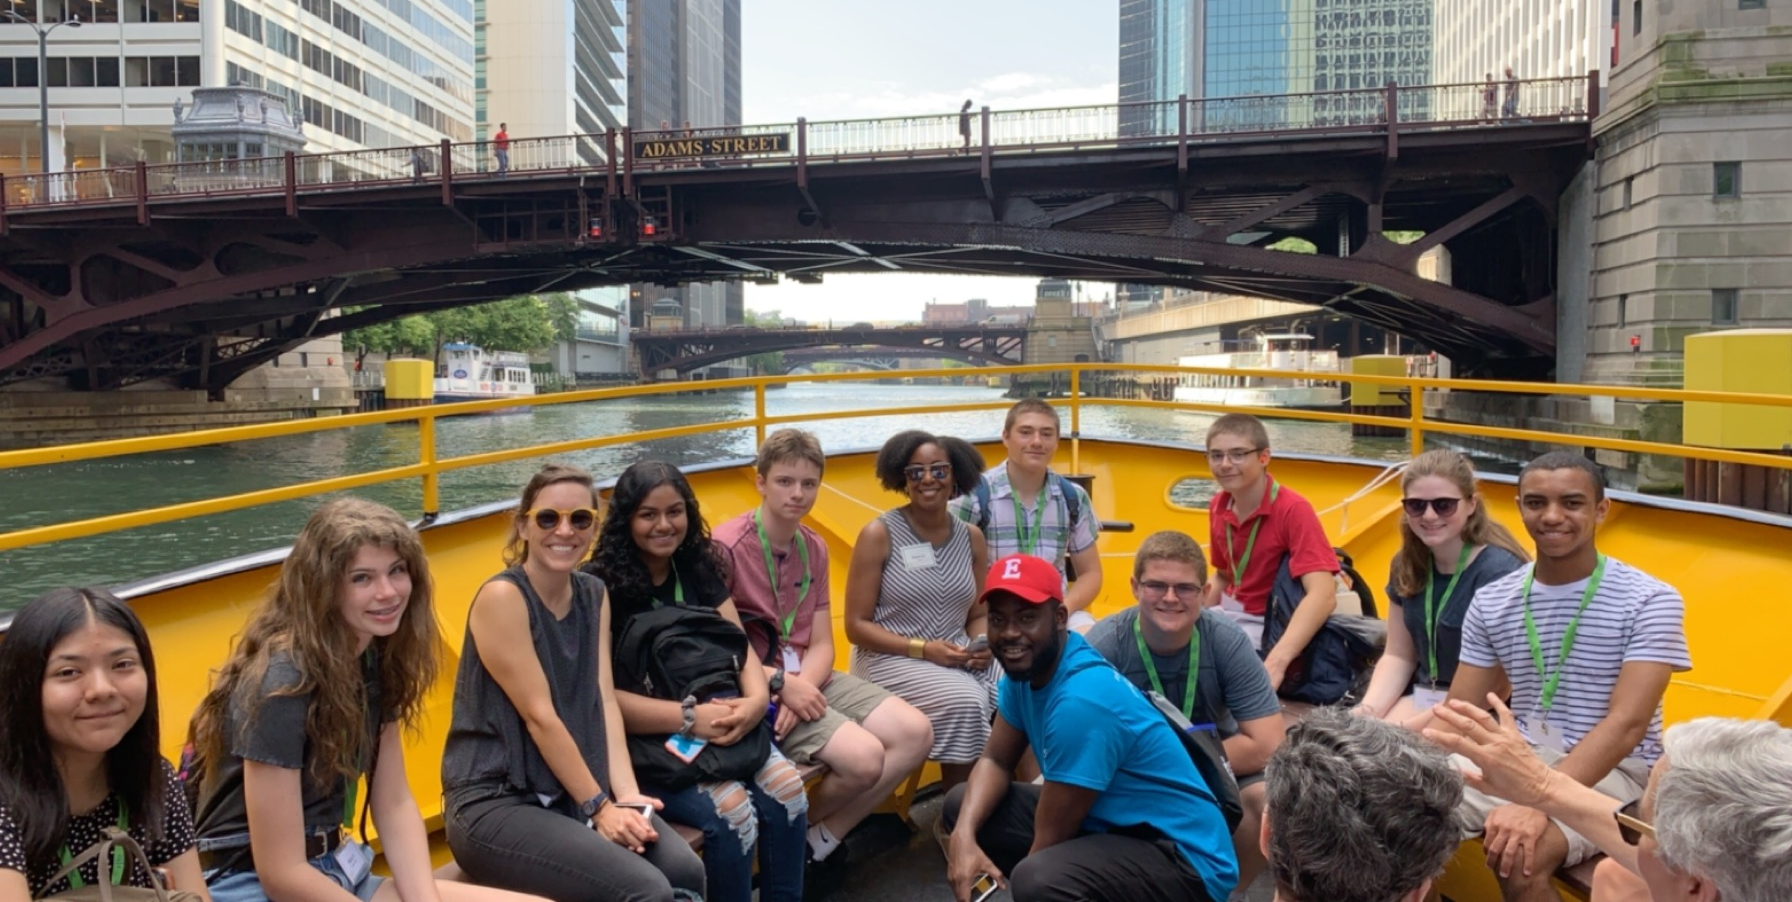 Image of students on boat on the Chicago River